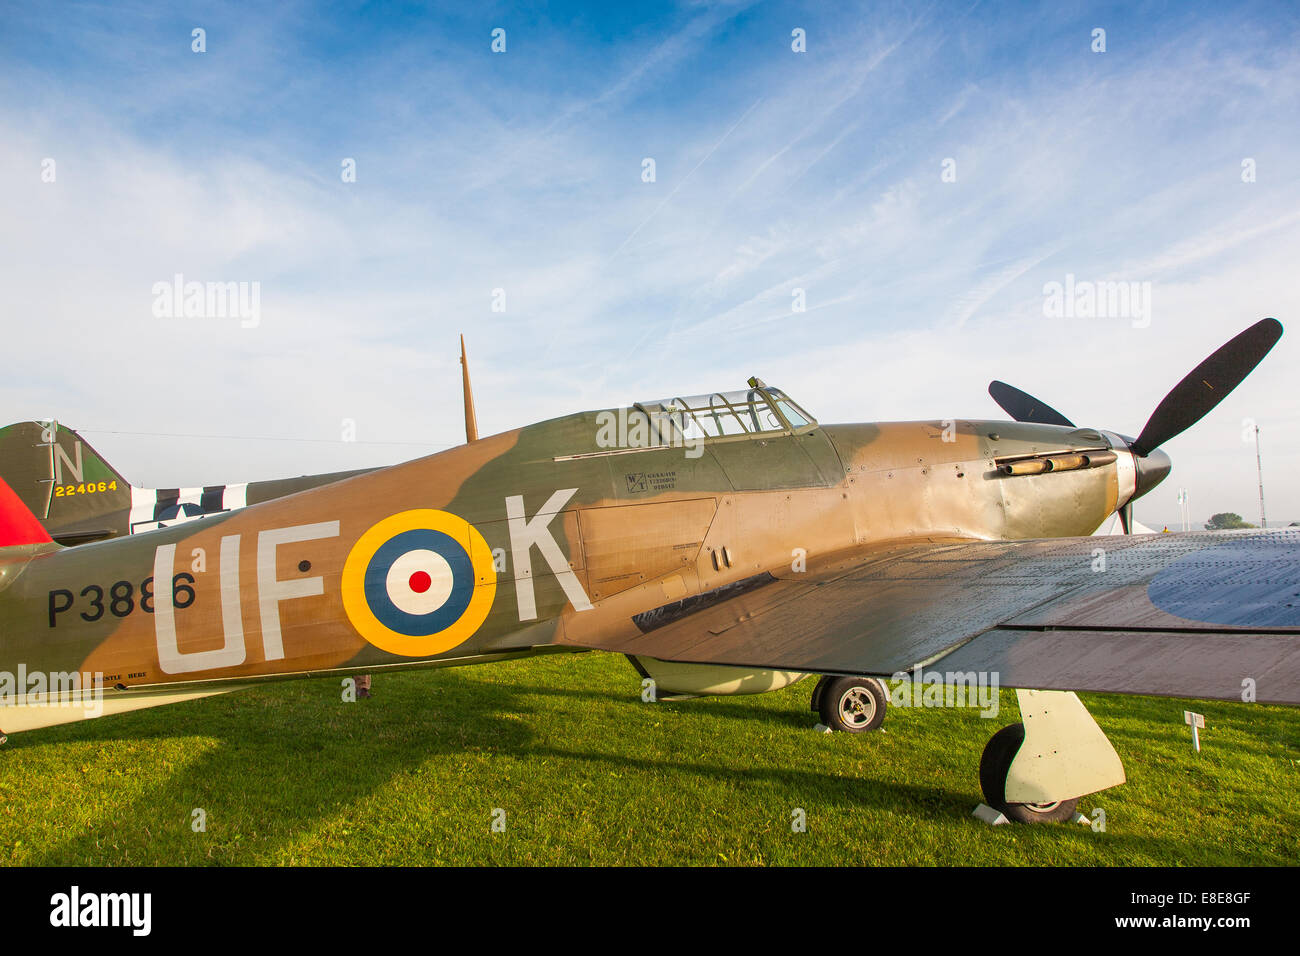 Hurricane MkI P3886 UF-K fighter plane at the Goodwood Revival 2014, West Sussex, UK - Stock Image